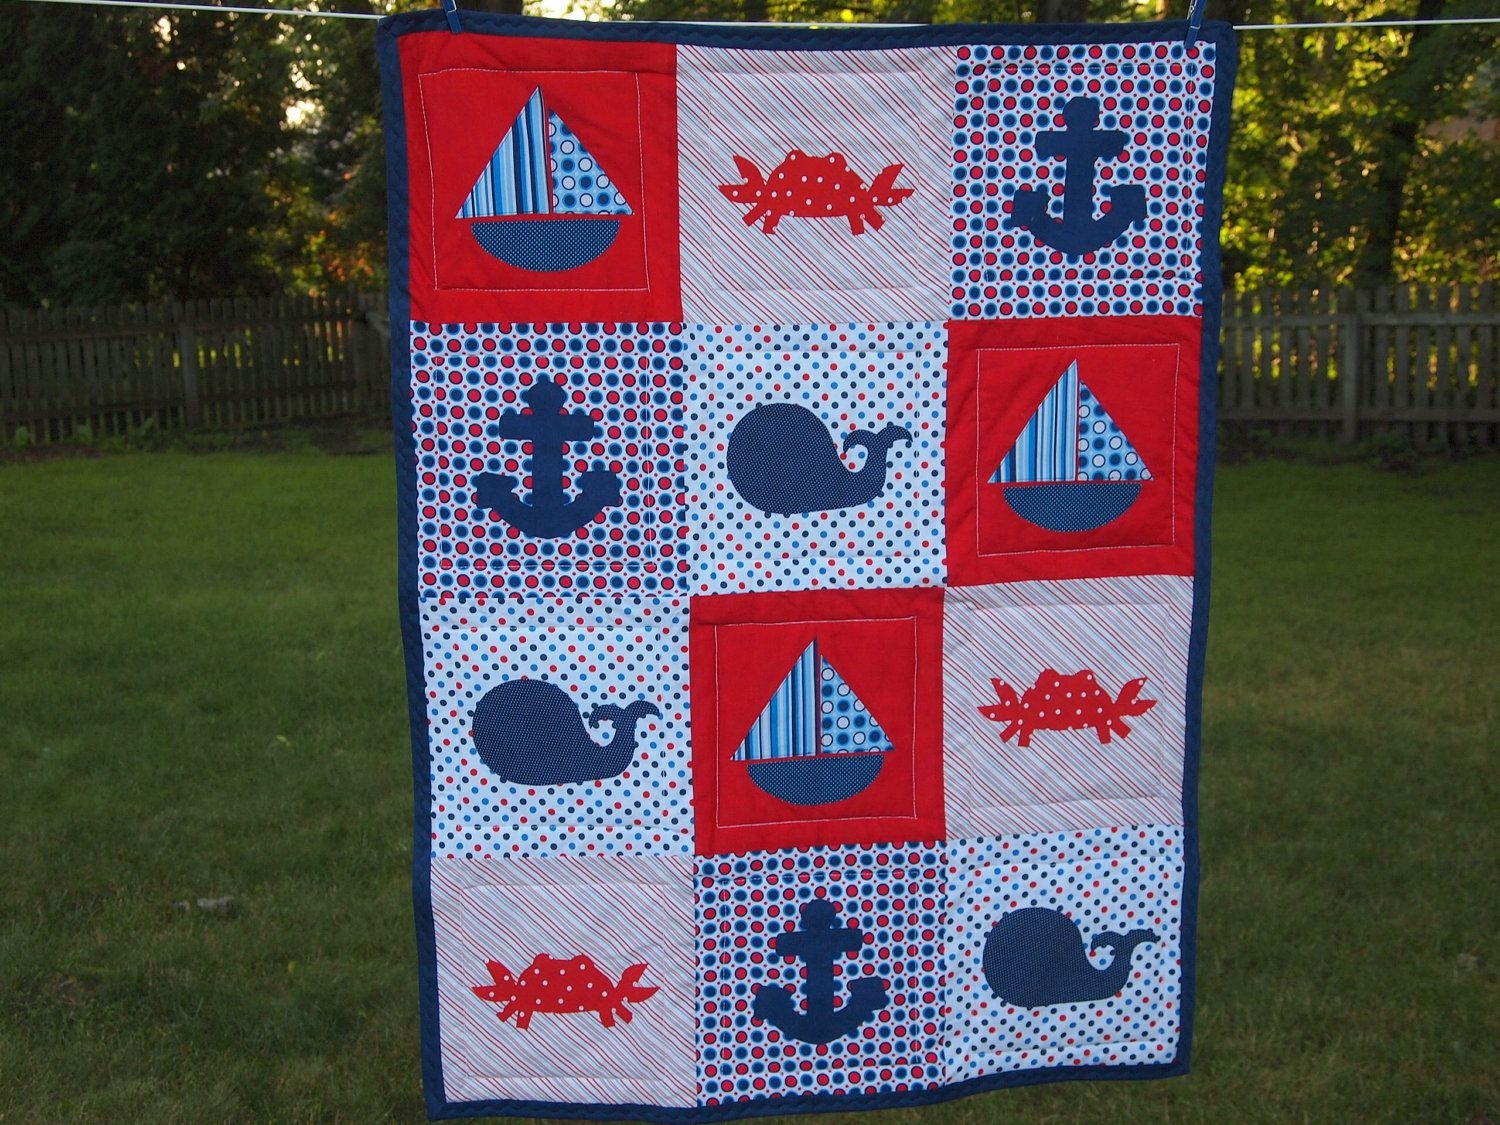 Marvelous mini quilt patterns favequilts